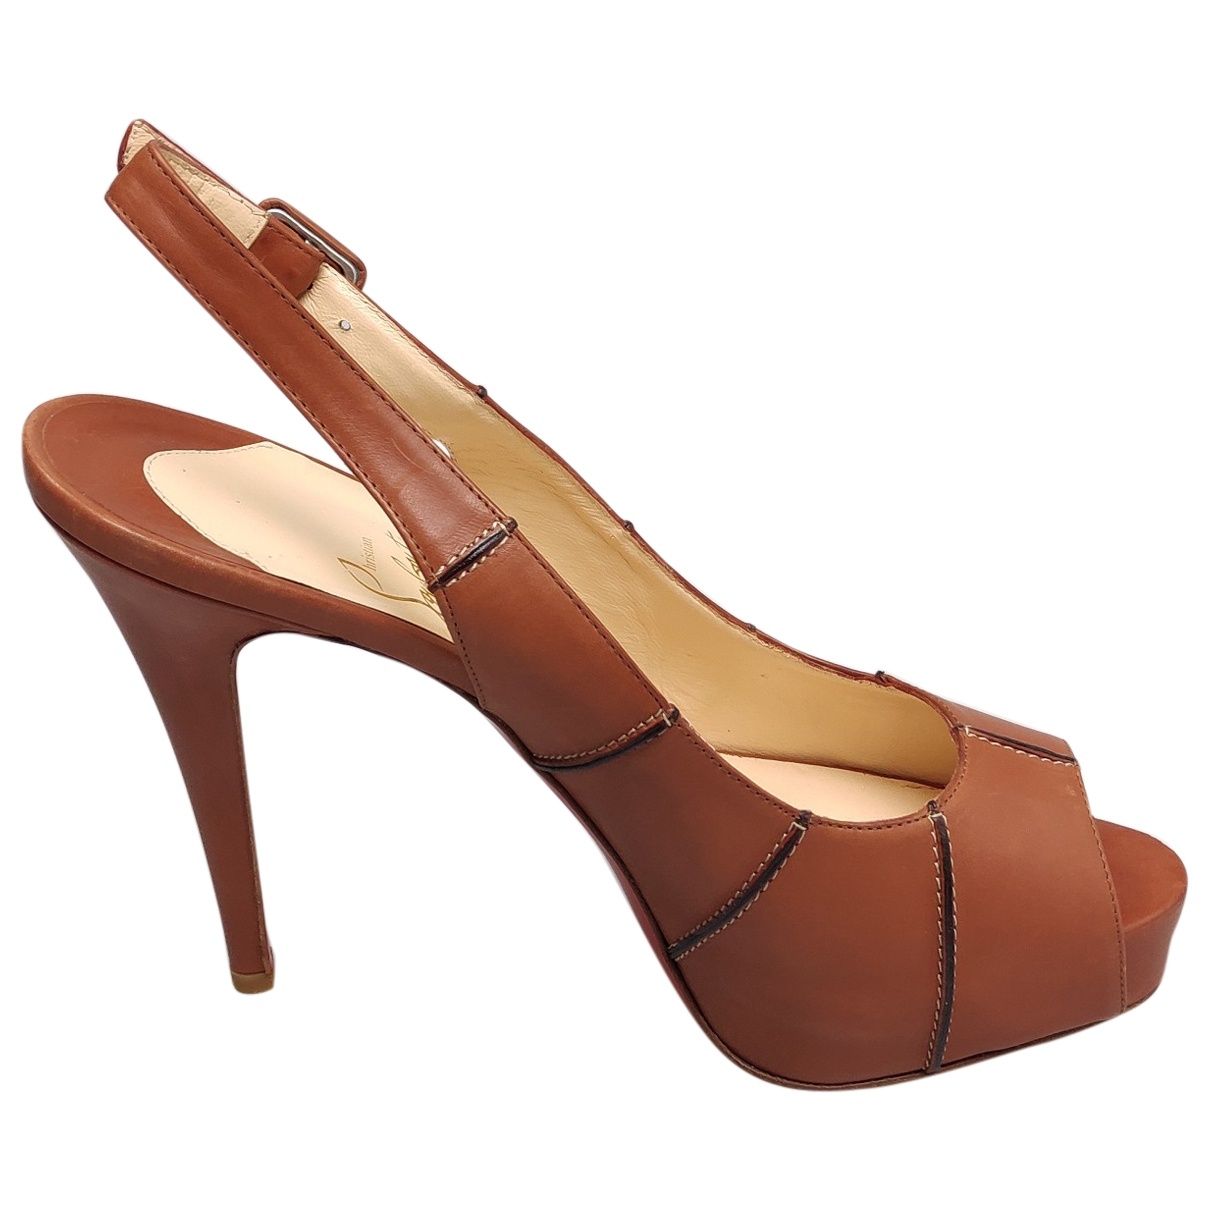 Christian Louboutin Private Number Camel Leather Heels for Women 40.5 EU